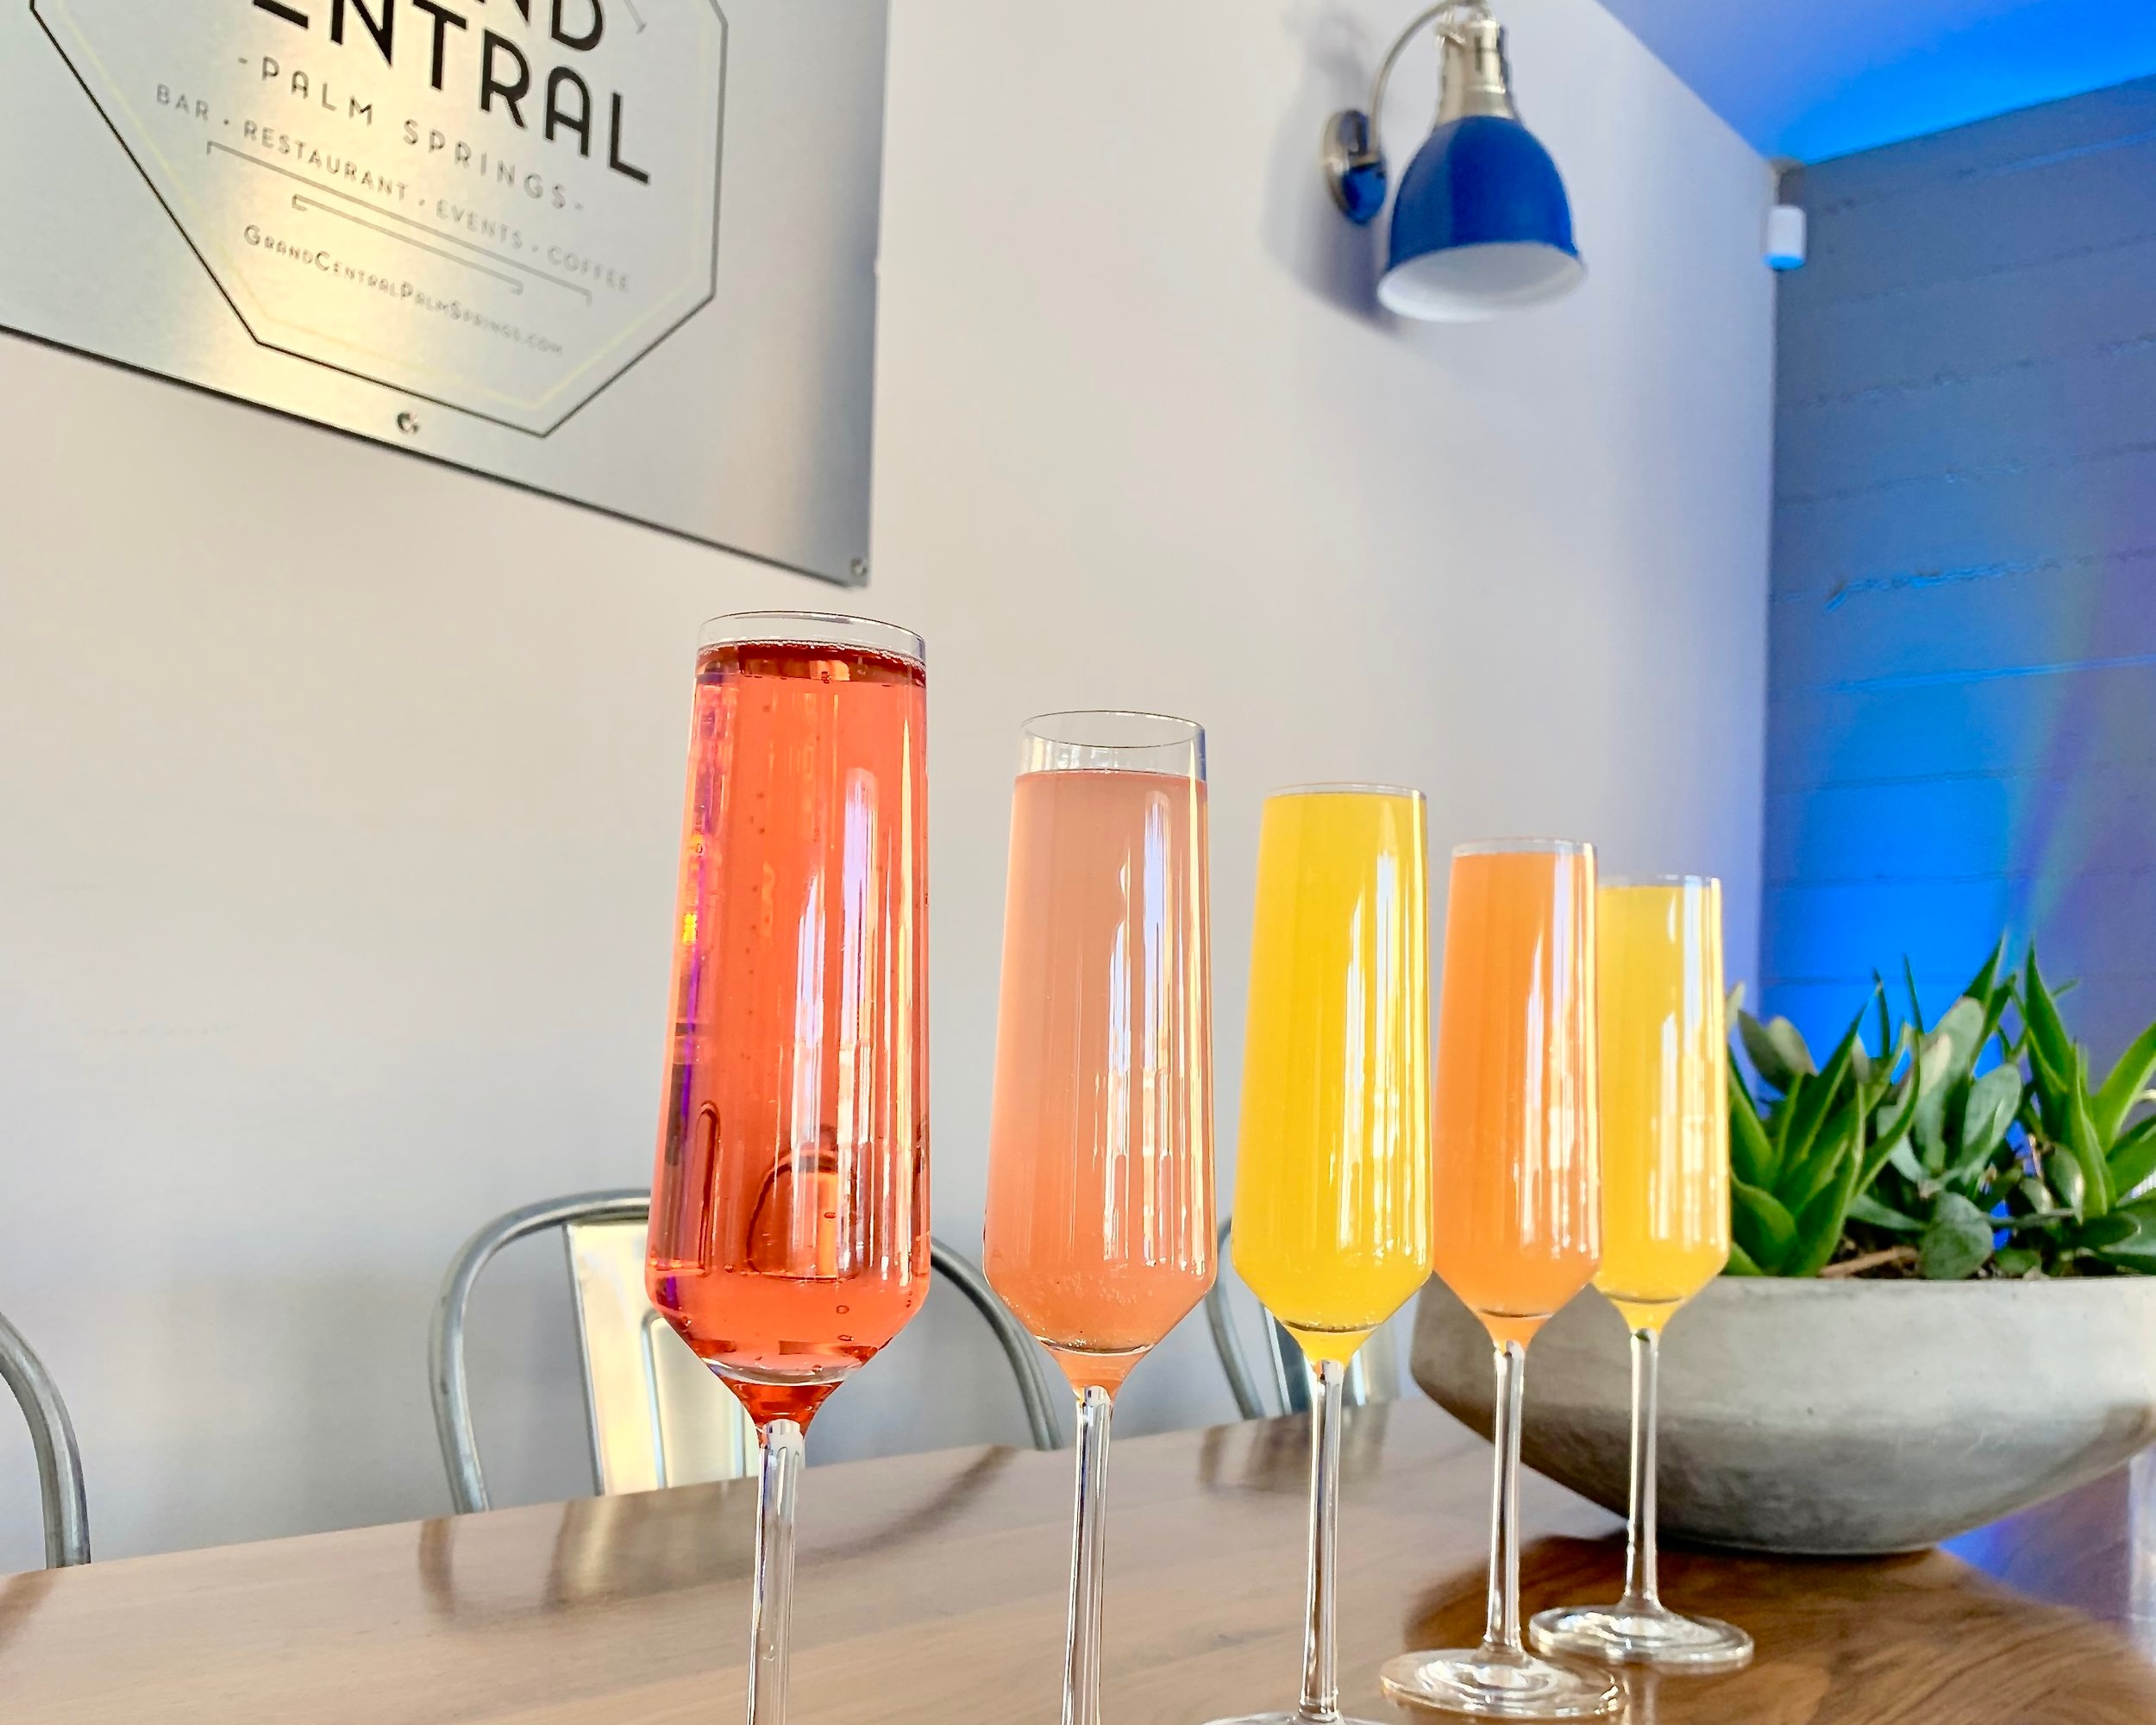 Mimosa Flights at Grand Central Palm Springs